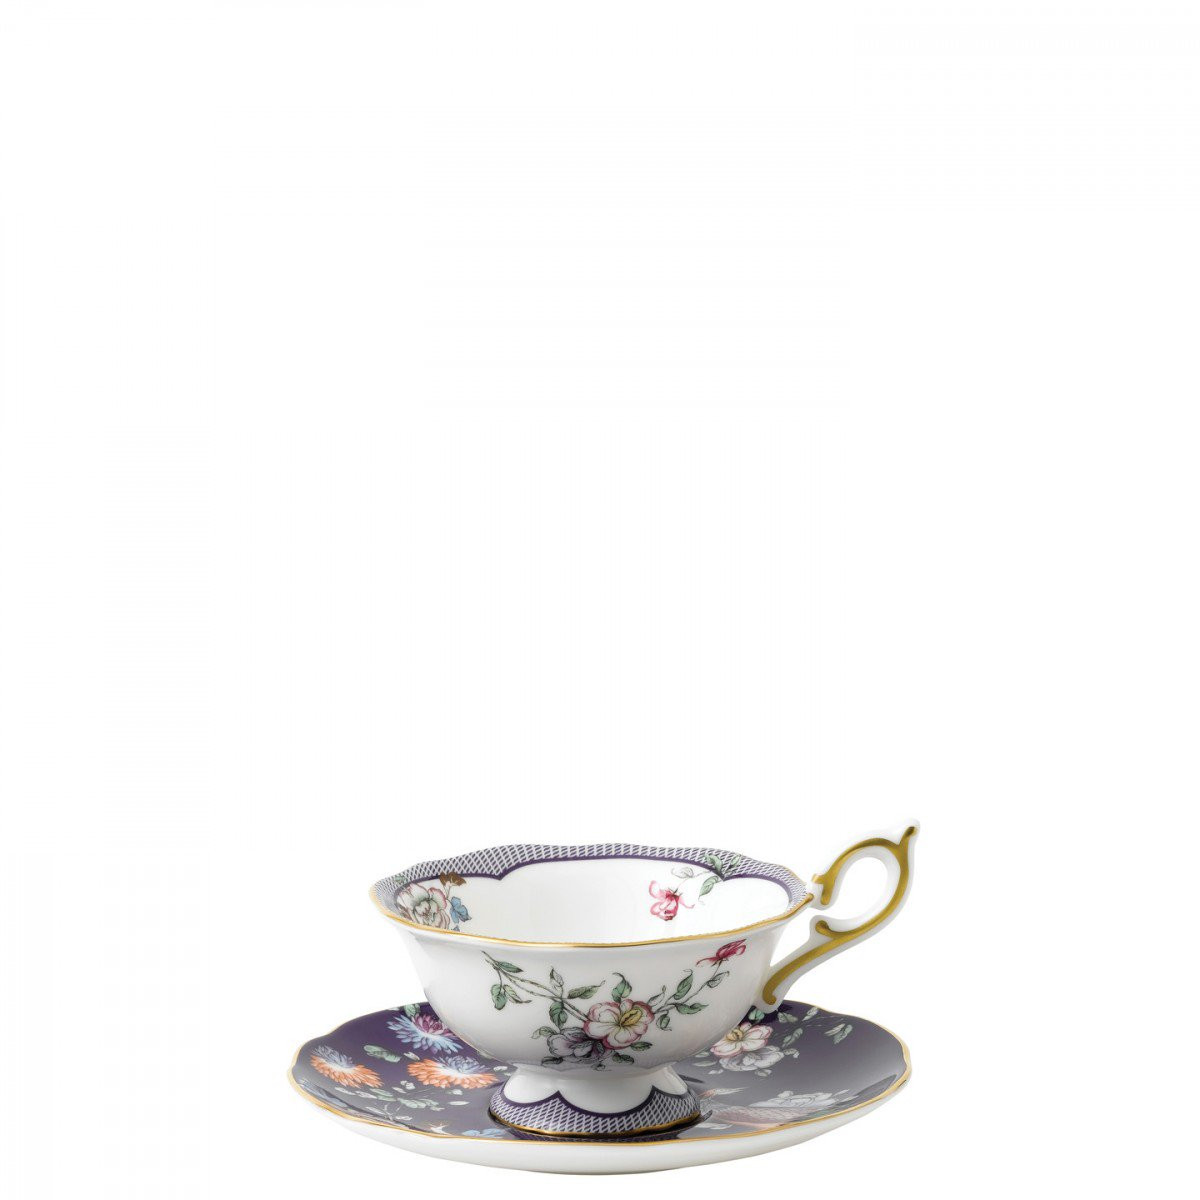 Wedgwood Bone China Wild Strawberry Vase Of Wonderlust Midnight Crane Teacup Saucer Wedgwooda Uk Throughout Wonderlust Midnight Crane Teacup Saucer